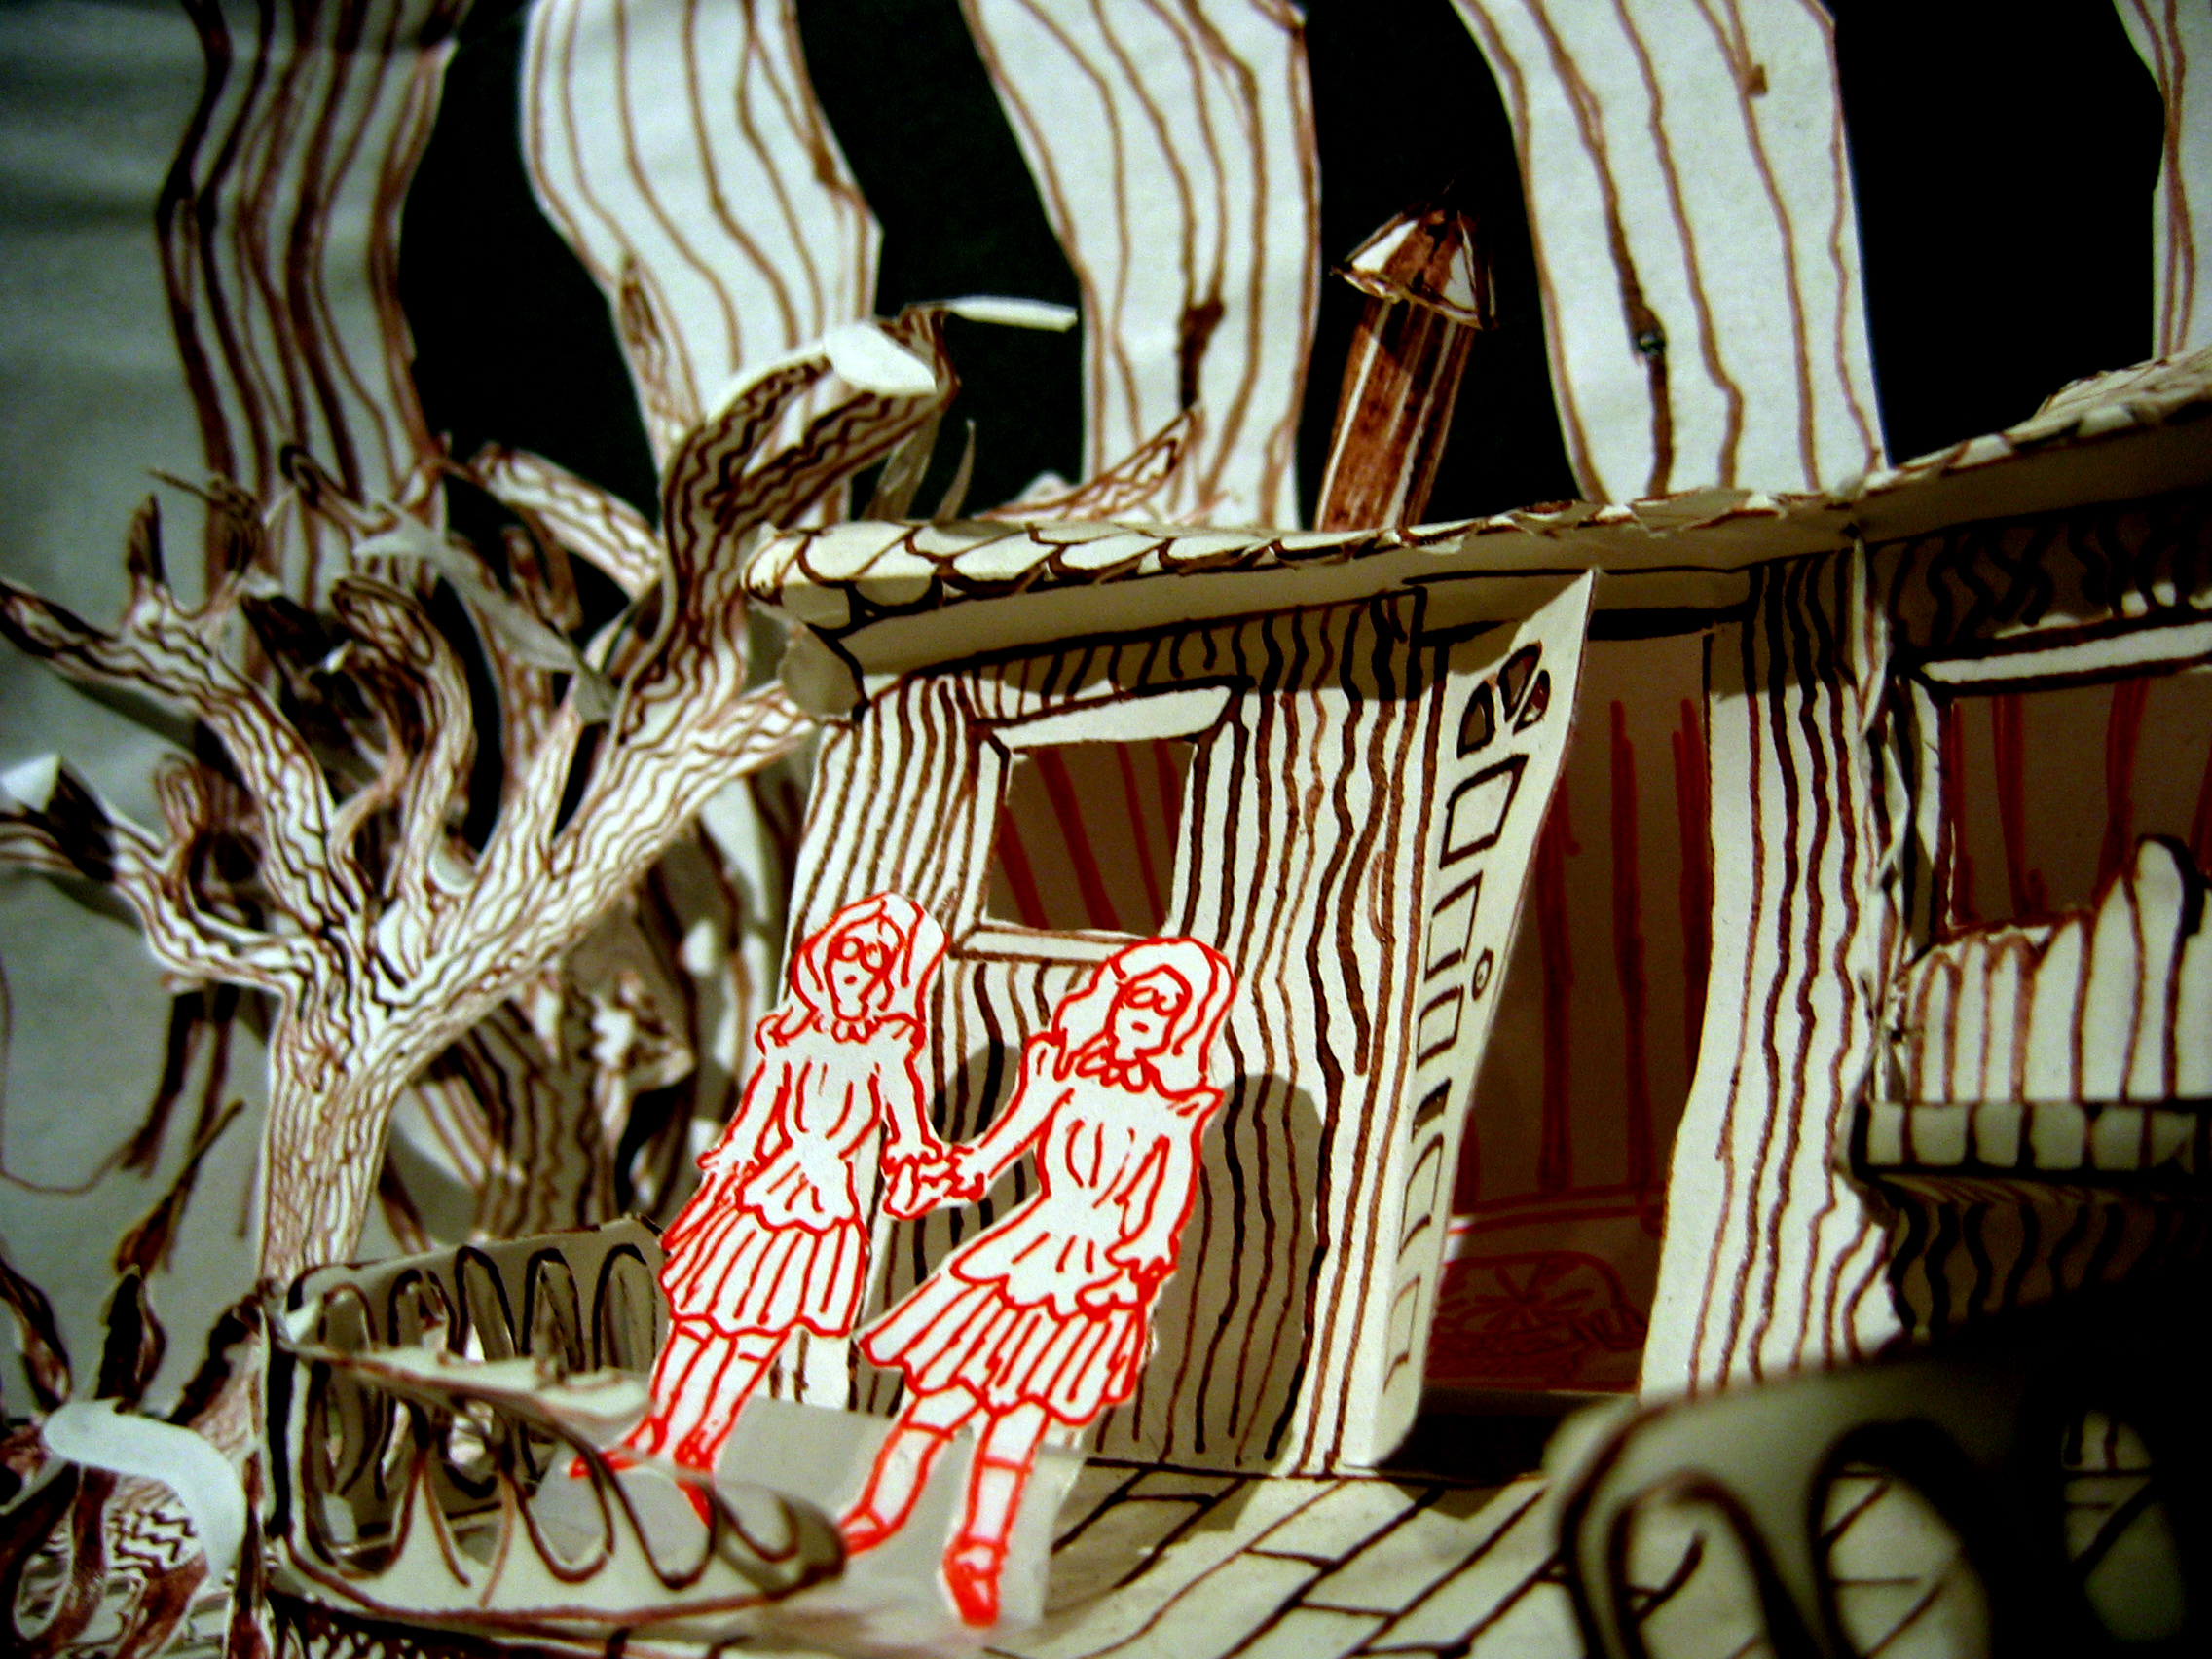 photo by Andy Lachance of a diorama from 2005's TEA WITH THE TWINS by Normandy Sherwood and Jenny Seastone